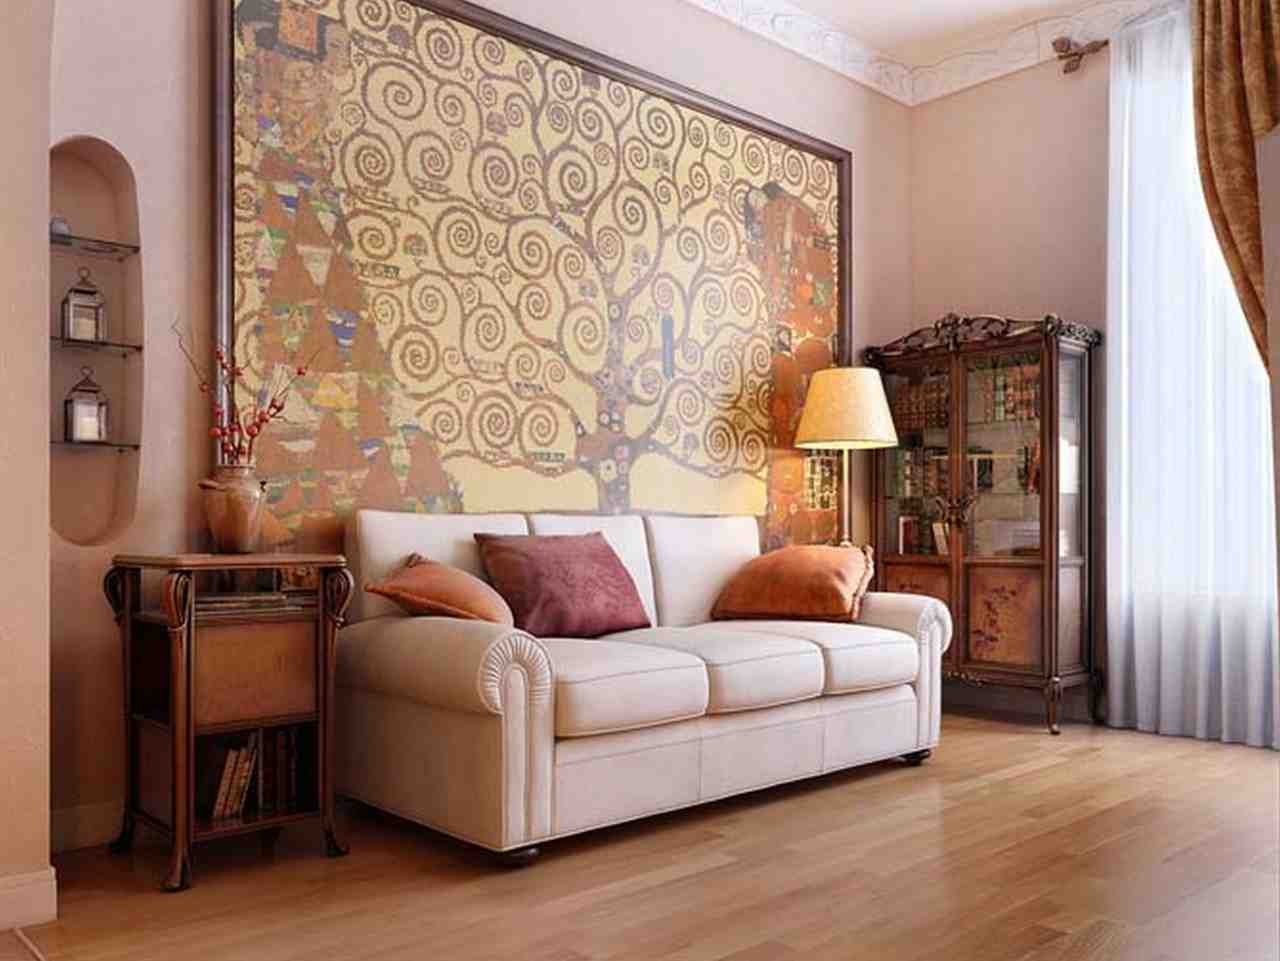 Large Wall Decor Ideas for Living Room - Decor IdeasDecor ... on Wall Decor For Living Room  id=76163